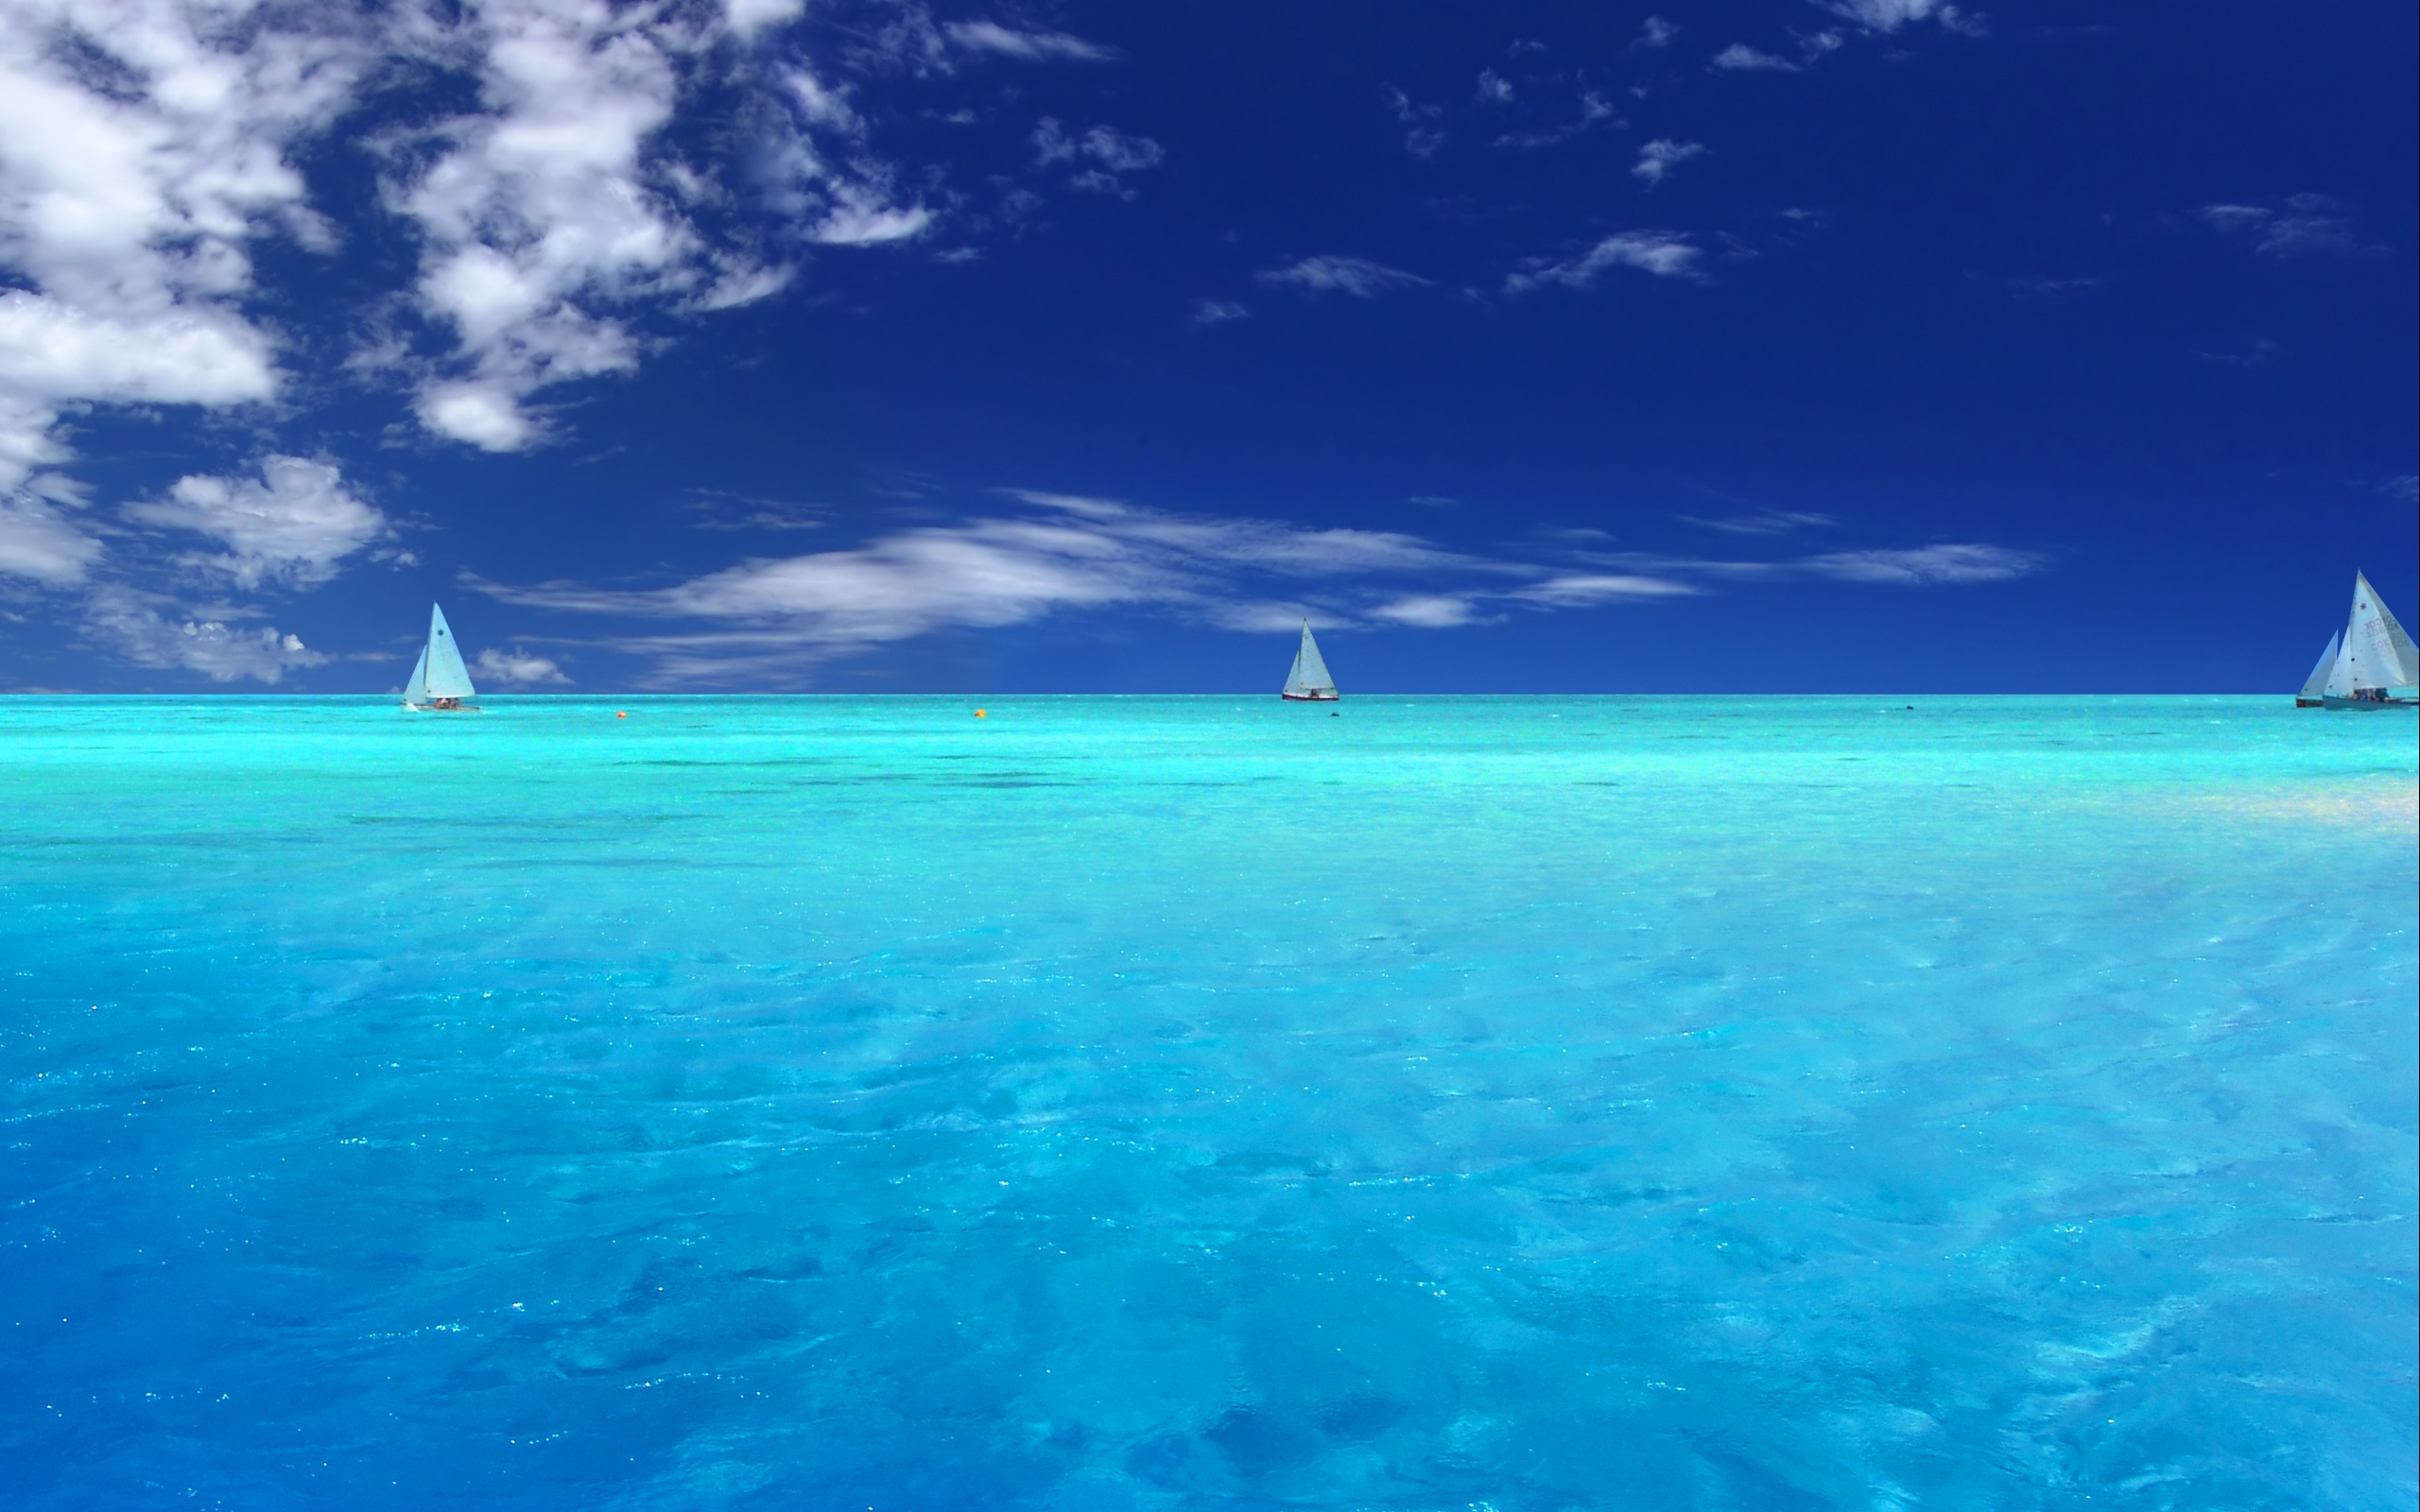 Gorgeous Ocean Wallpaper 41235 1920x1080 px